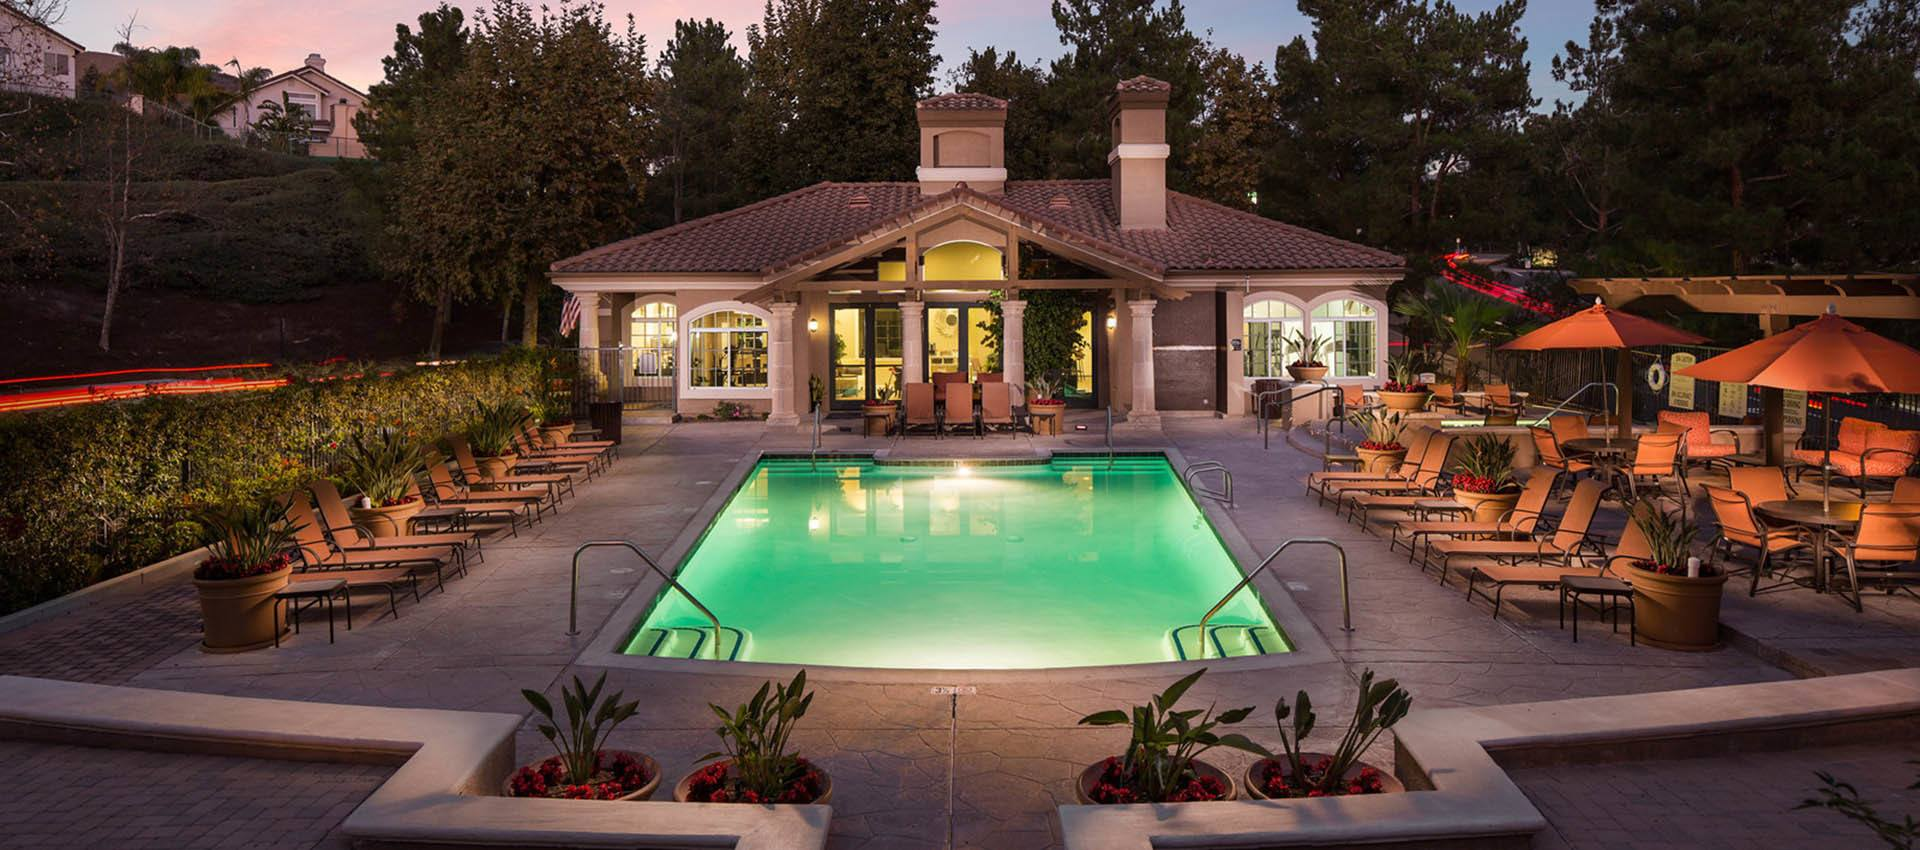 Resort Style Swimming Pool At Night at Paloma Summit Condominium Rentals in Foothill Ranch, California